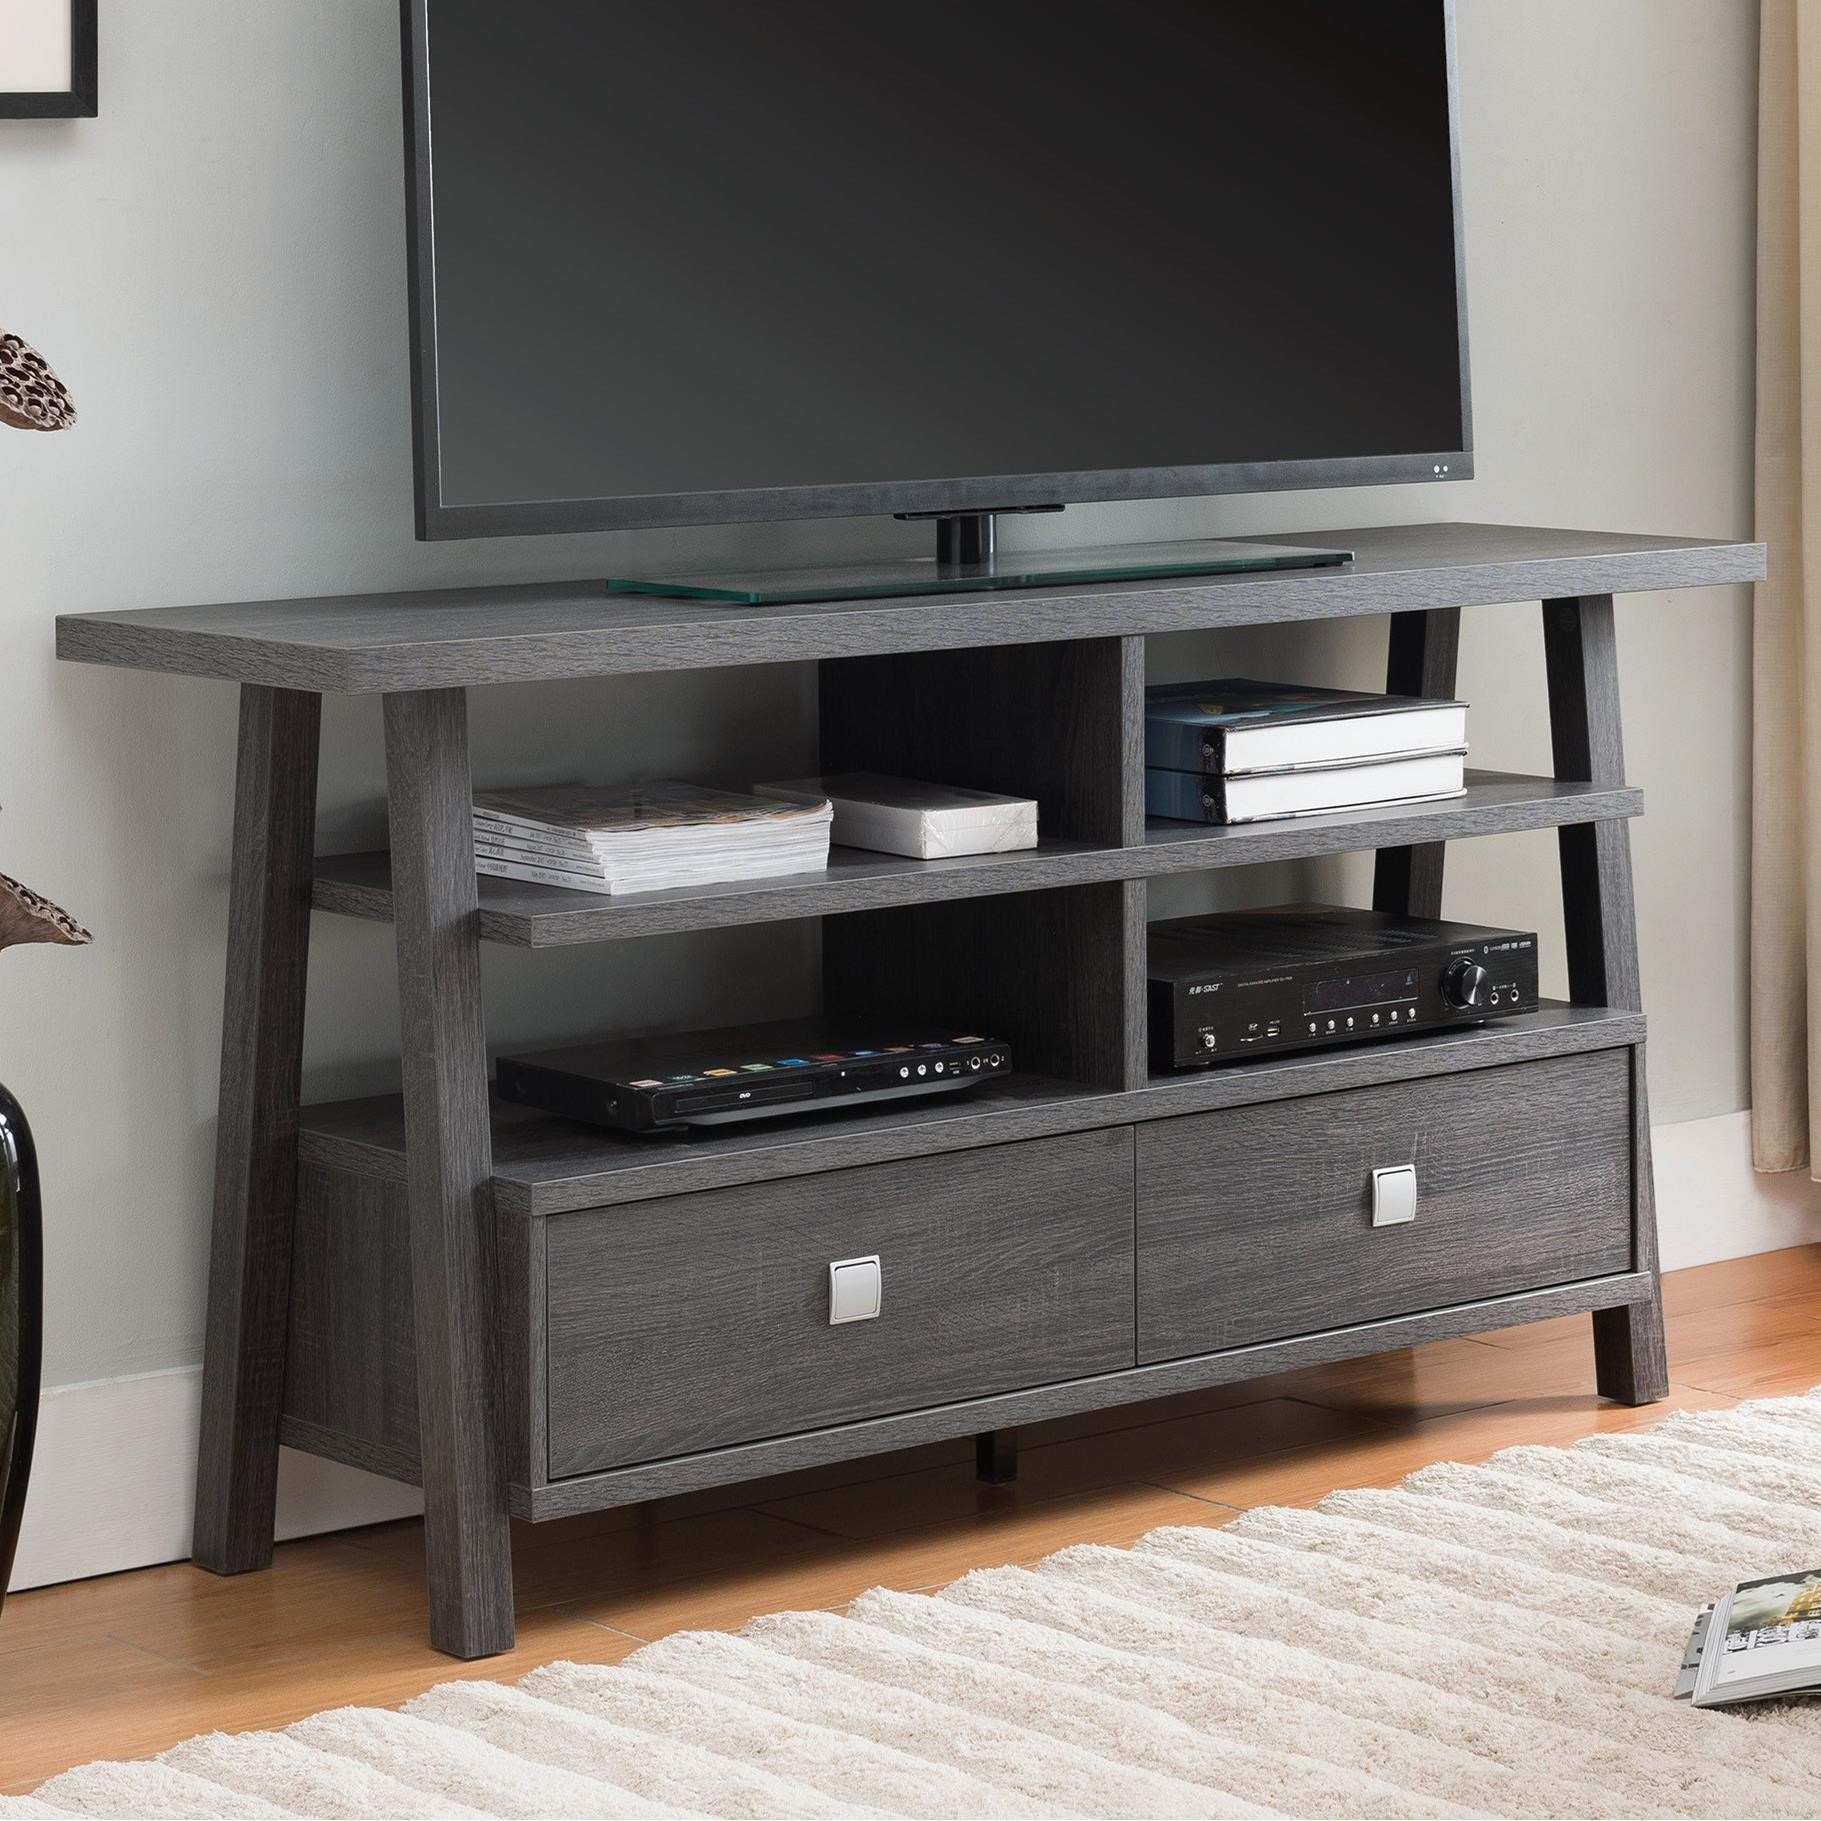 Jarvis Tv Stand Assembled Drawers by Crown Mark at Northeast Factory Direct